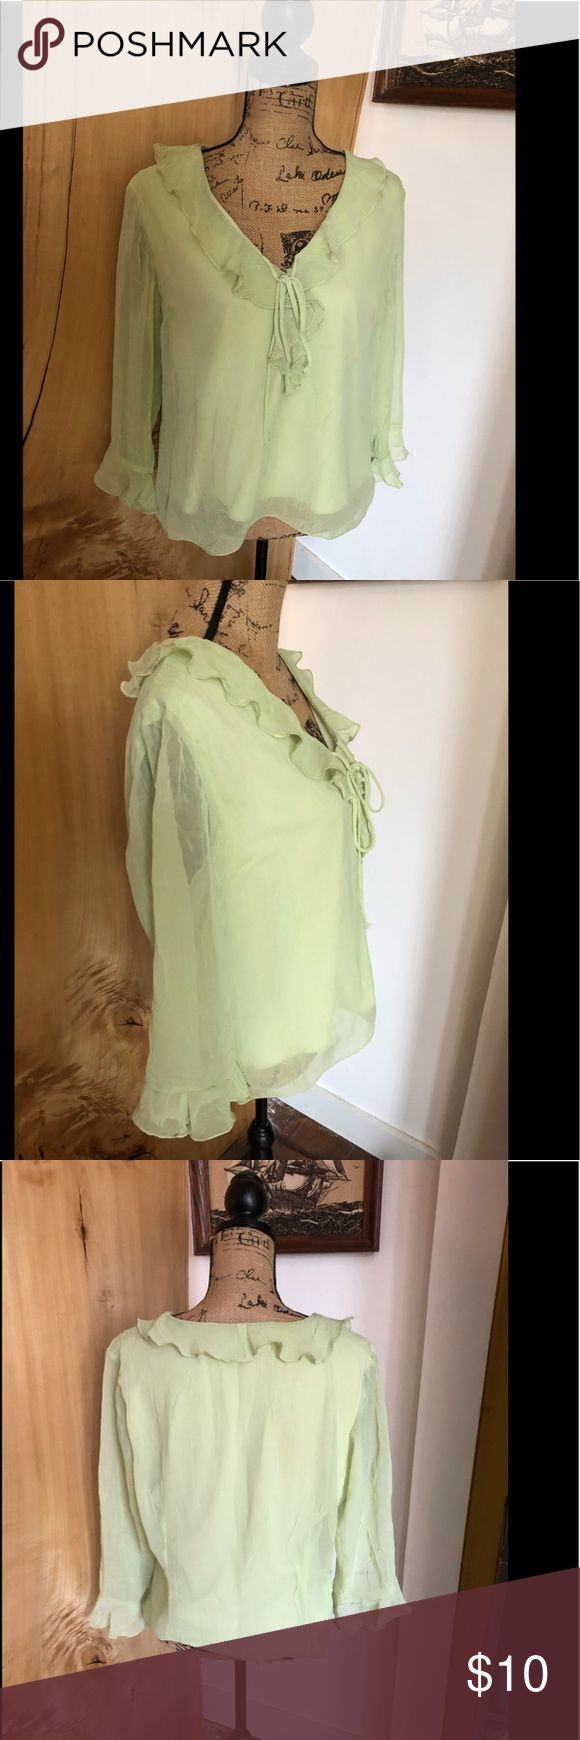 Dress barn light green top Dress barn light green top  This top features a ruffled collar with tie in front sheer sleeves and a wrinkled  effect look with slip underneath  This is a used top and does show signs of wear such as some loose strings COMES FROM A DOG AND SMOKE FRIENDLY HOME Dress Barn Tops Blouses